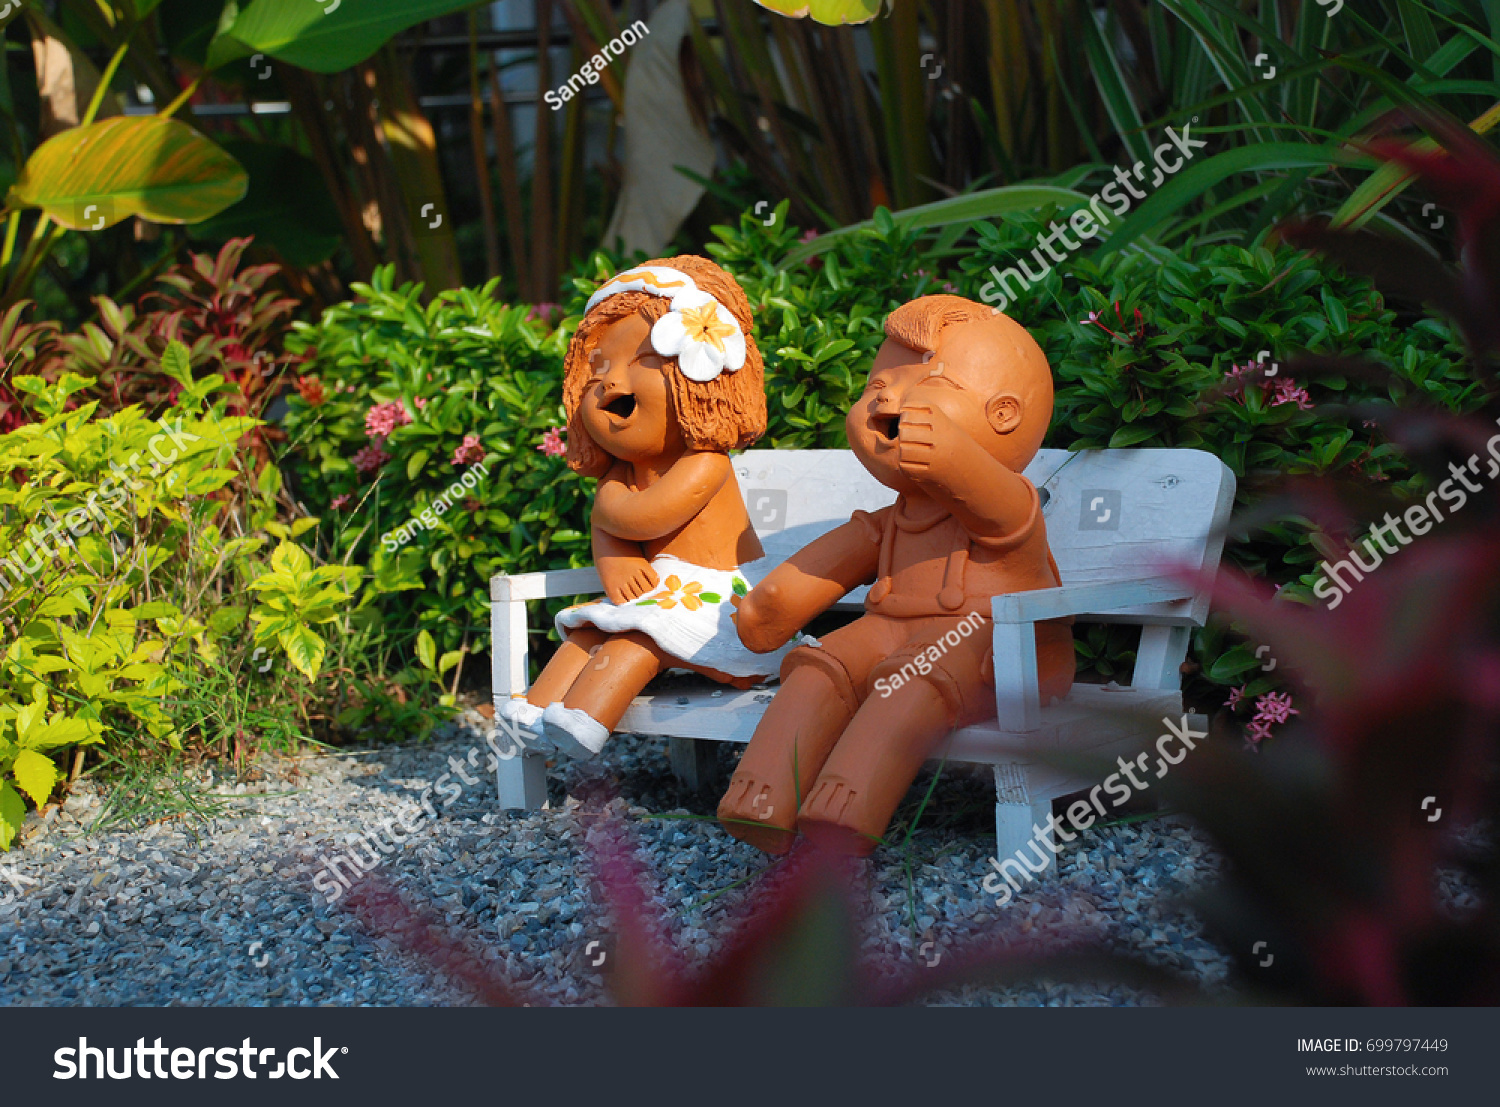 Smiling And Laughing Clay Doll In The Garden